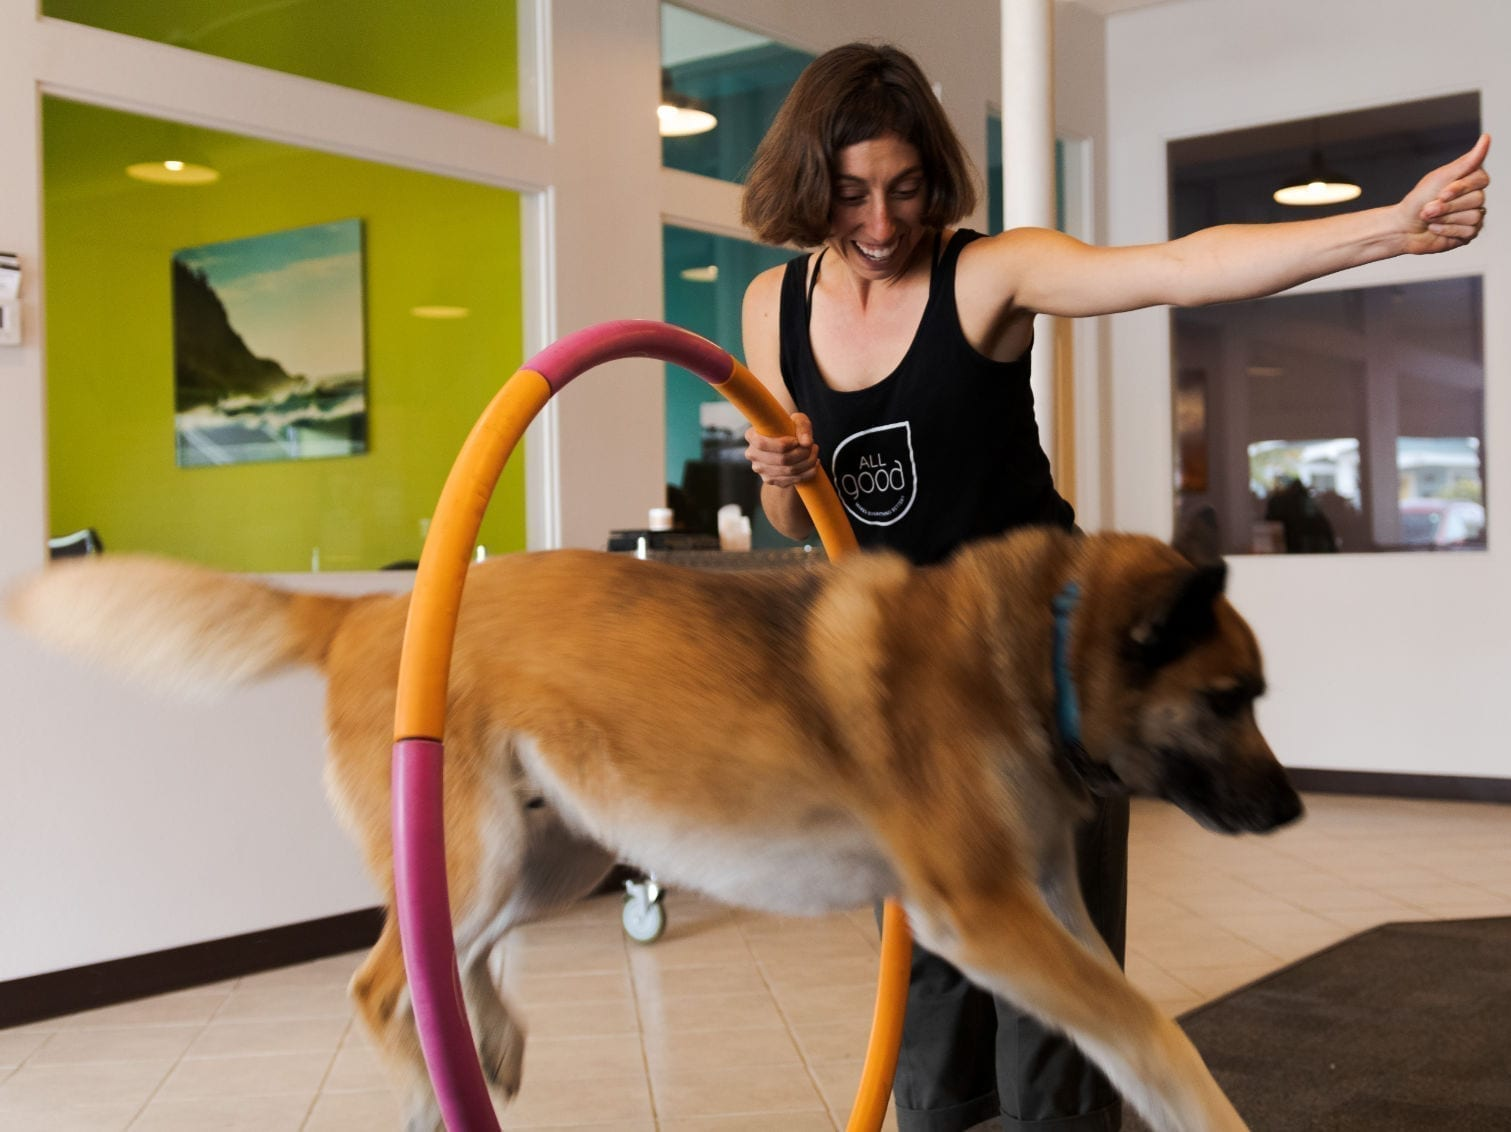 All Good team member holding hoop with dog jumping through